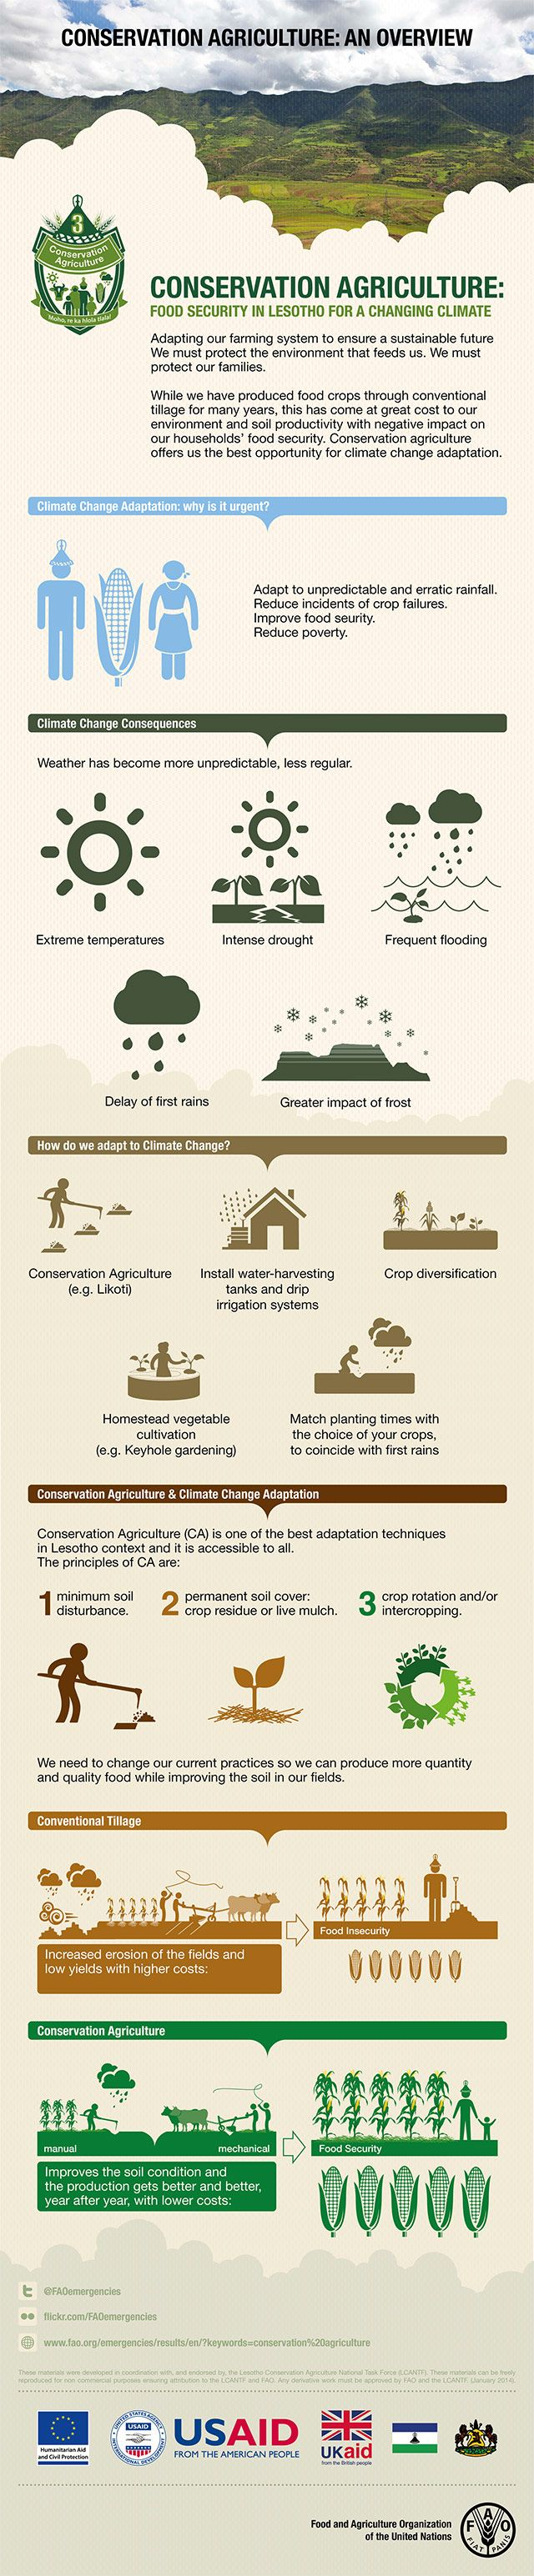 17 best images about multimodal essay info graphics while we have produced food crops through conventional tillage for many years this has come at great cost to our environment and soil productivity